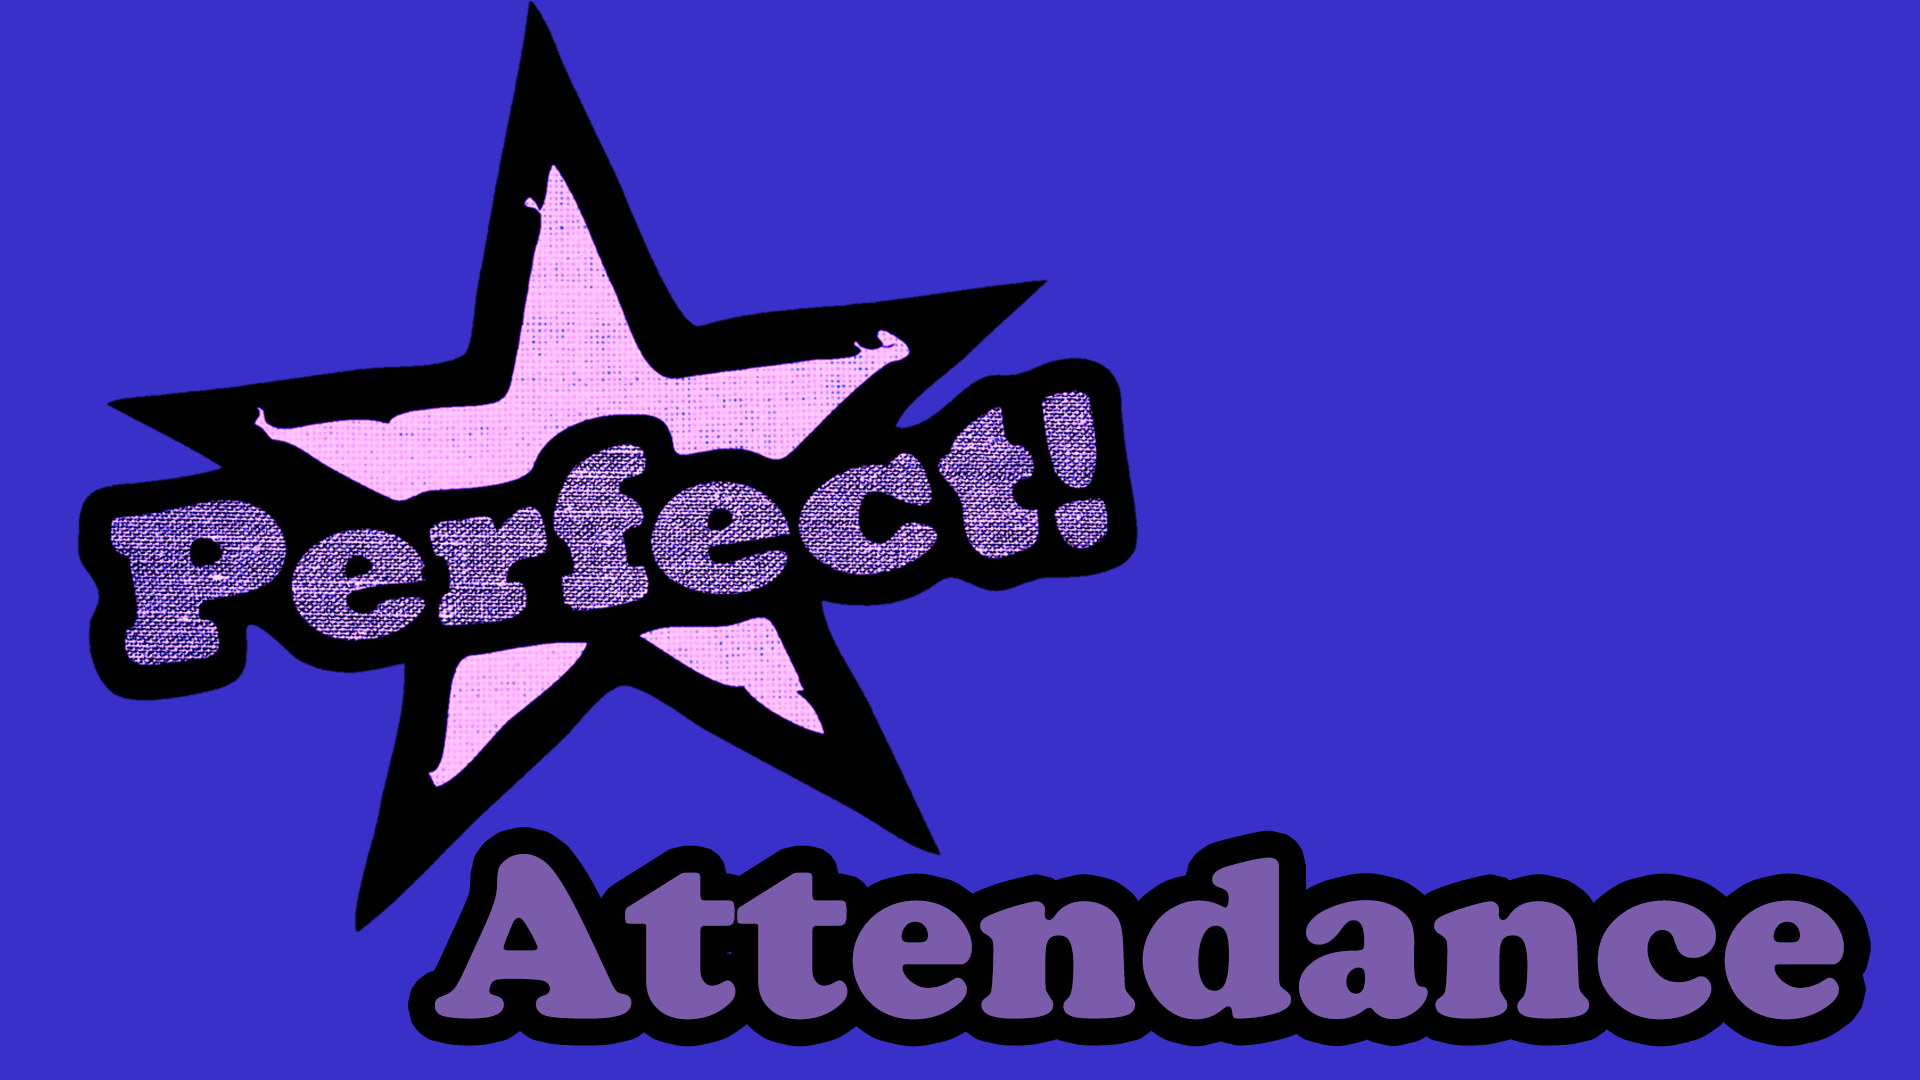 Church perfect attendance clipart picture black and white October Sunday School Perfect Attendance - Orion United Methodist Church picture black and white